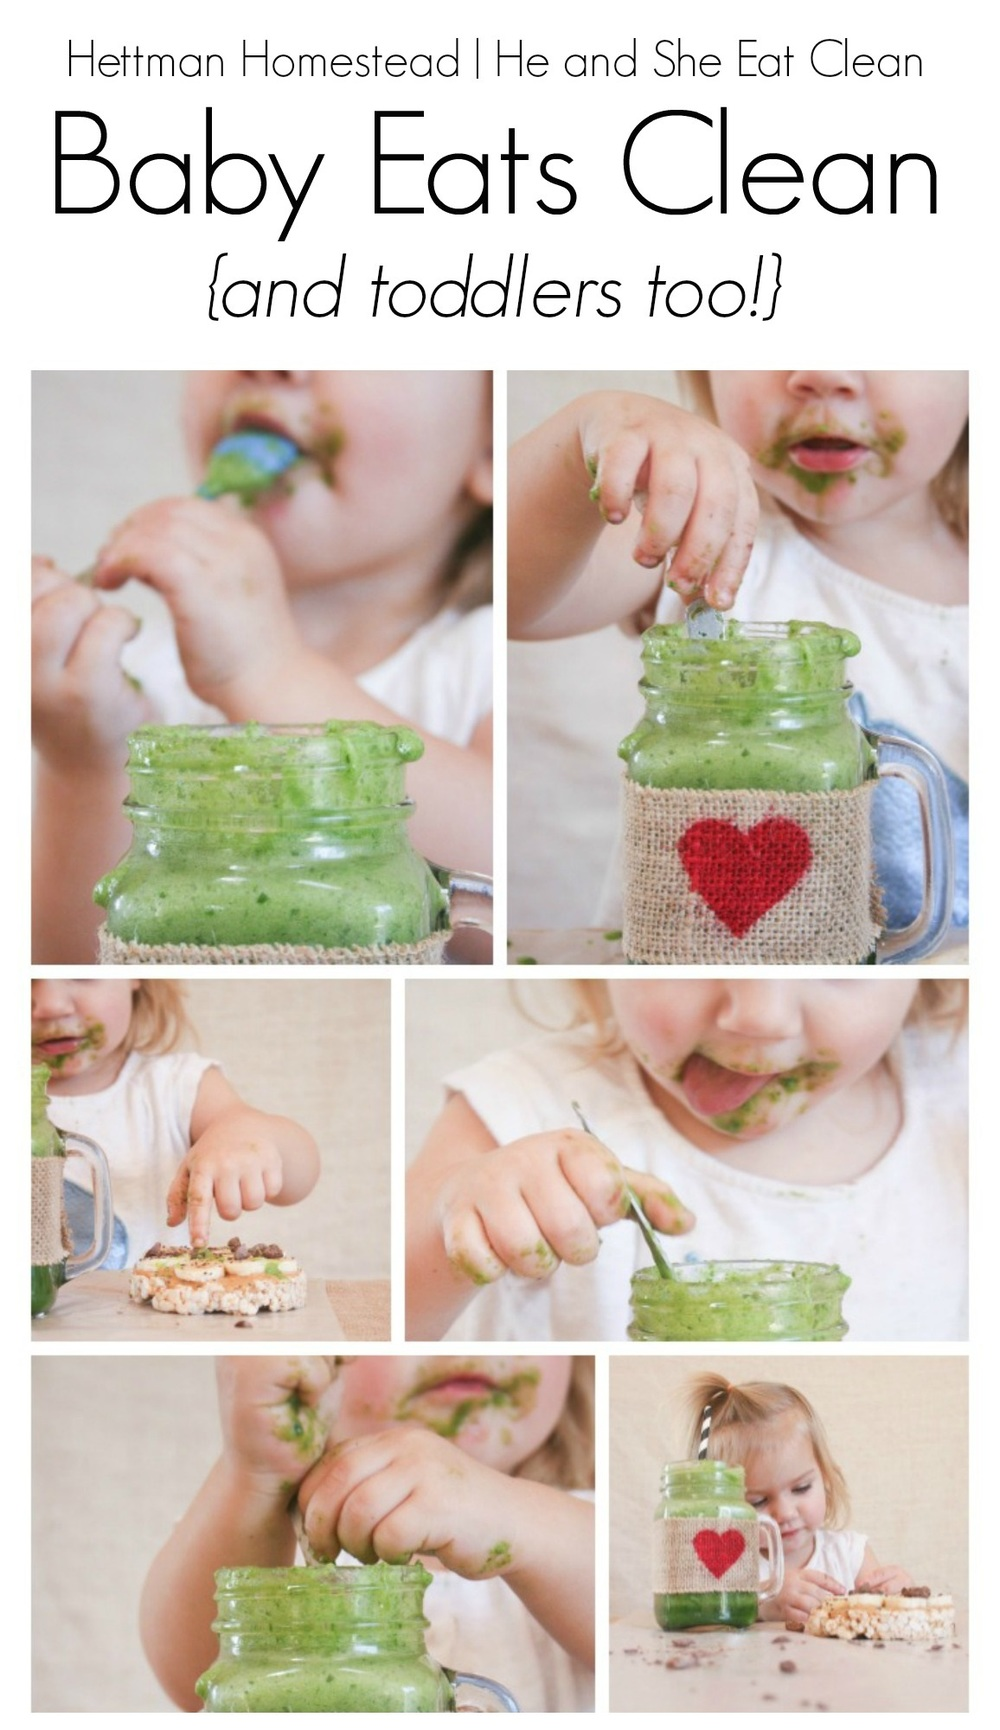 Healthy Recipes For Babies, Toddlers, and Kids